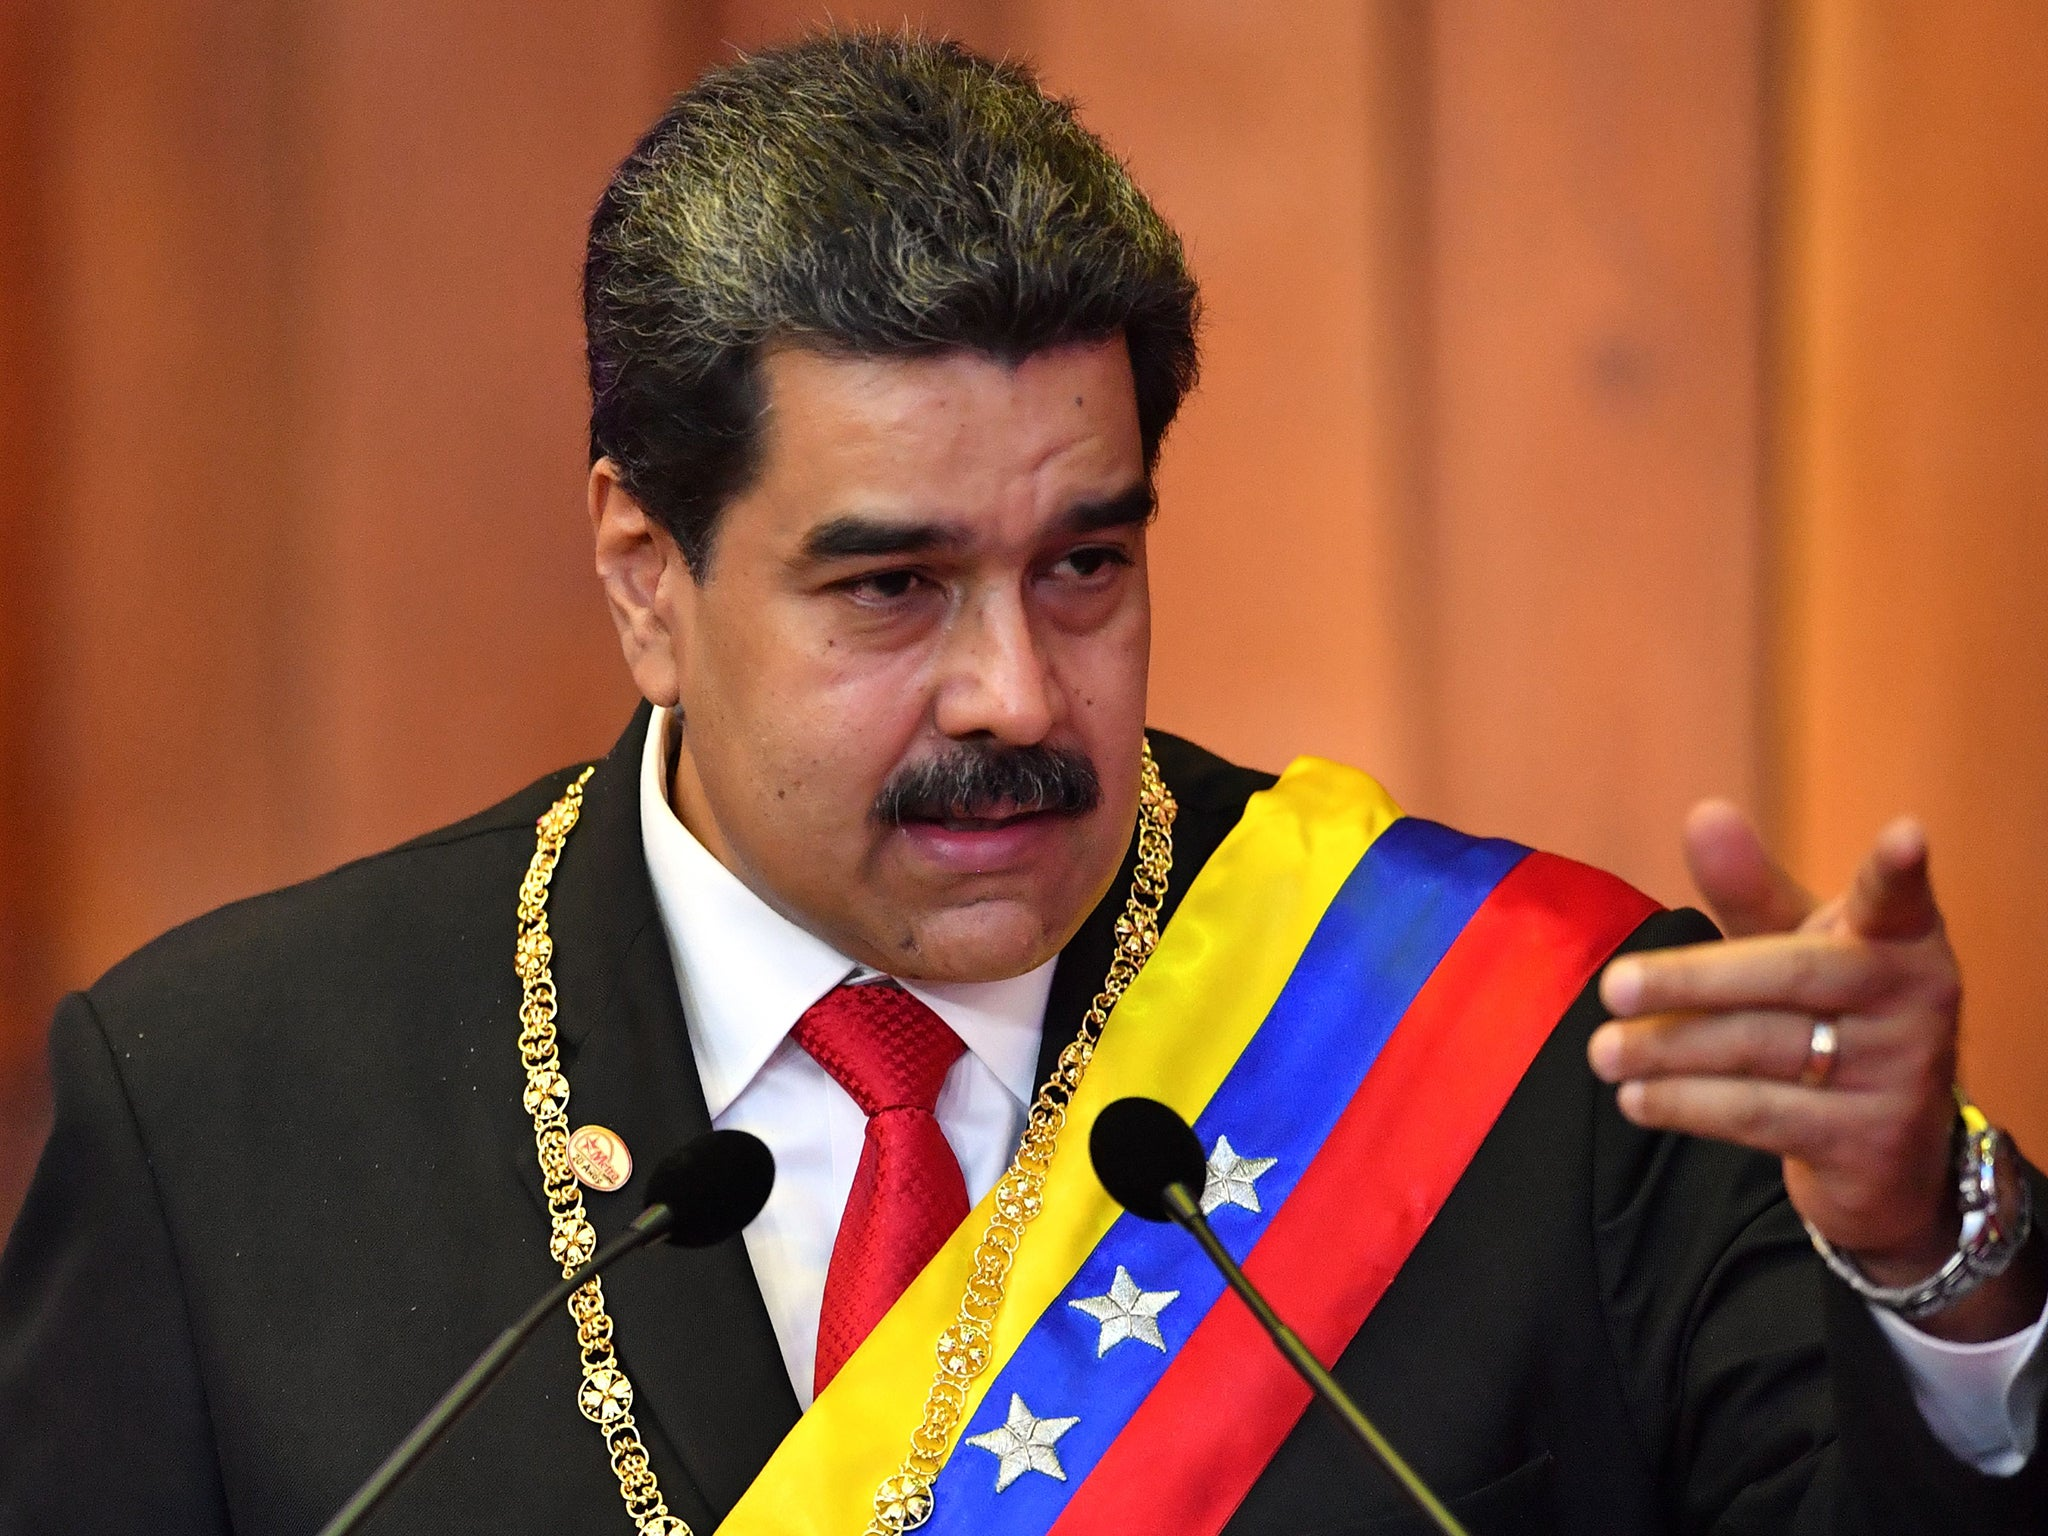 Donald Trump says US would send an army, not two mercenaries, to overthrow Venezuela's Maduro